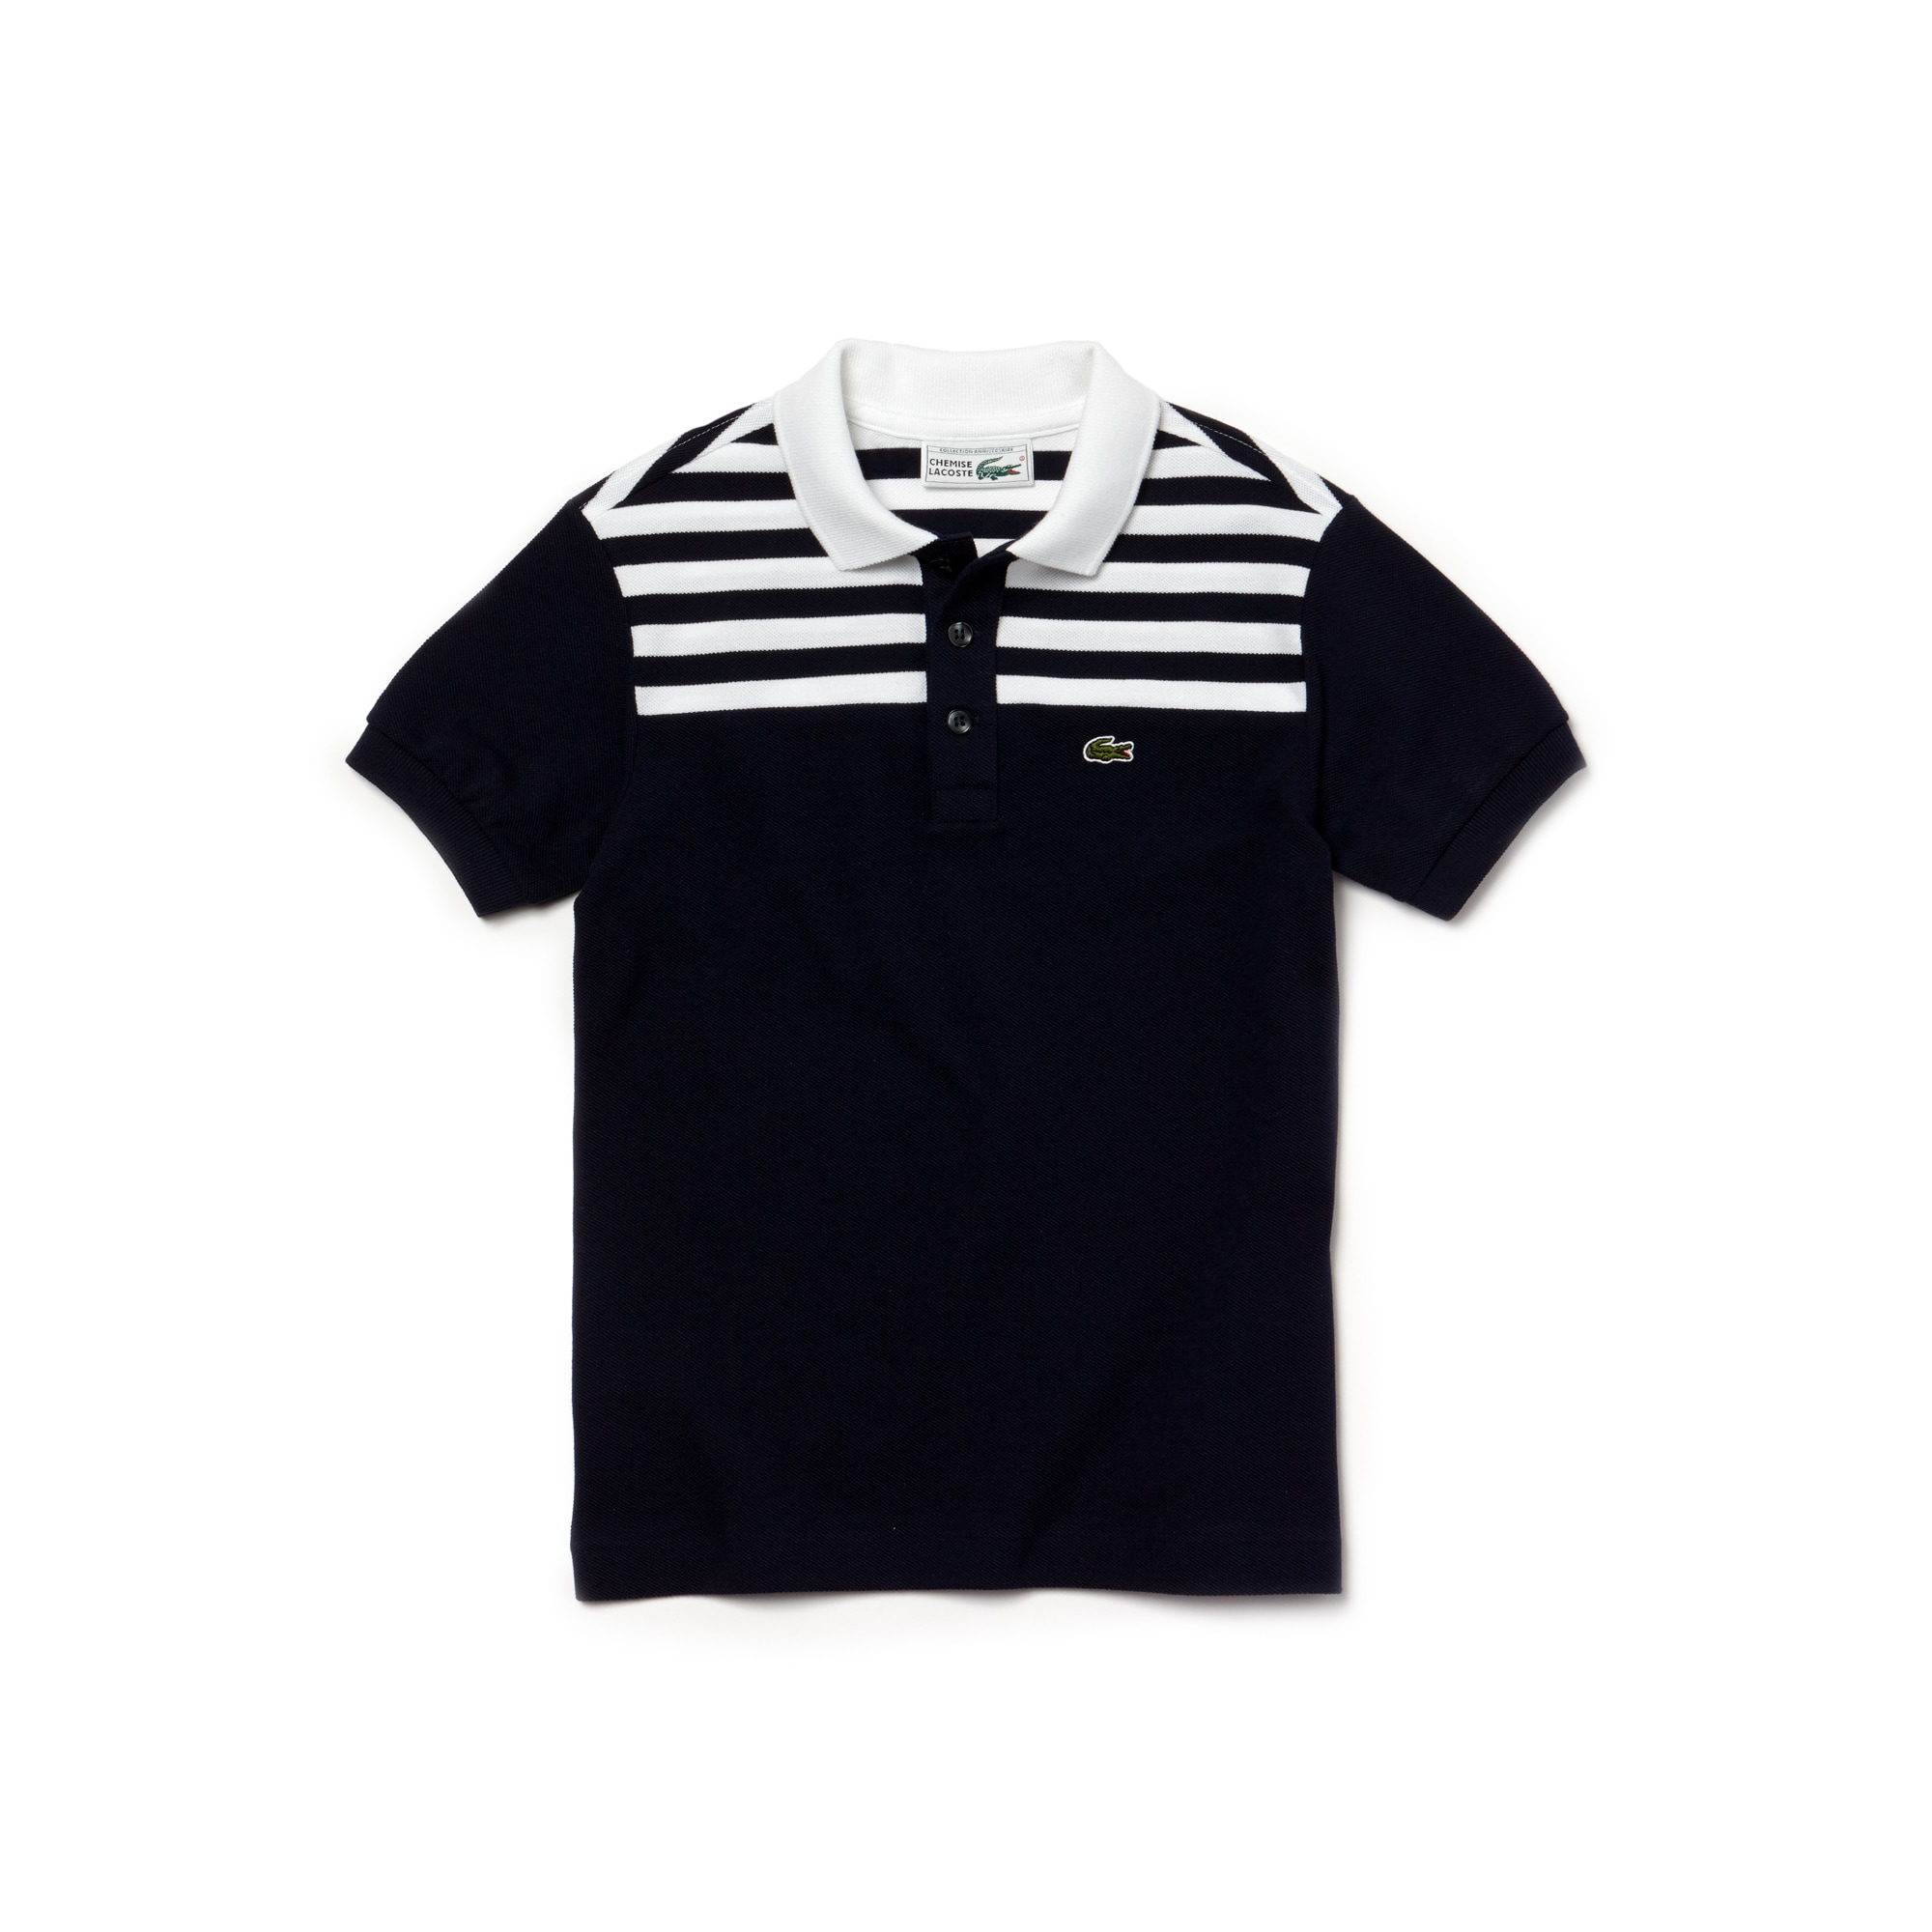 Boys' Lacoste 1980s Revival 85th Anniversary Limited Edition Petit Piqué Polo Shirt